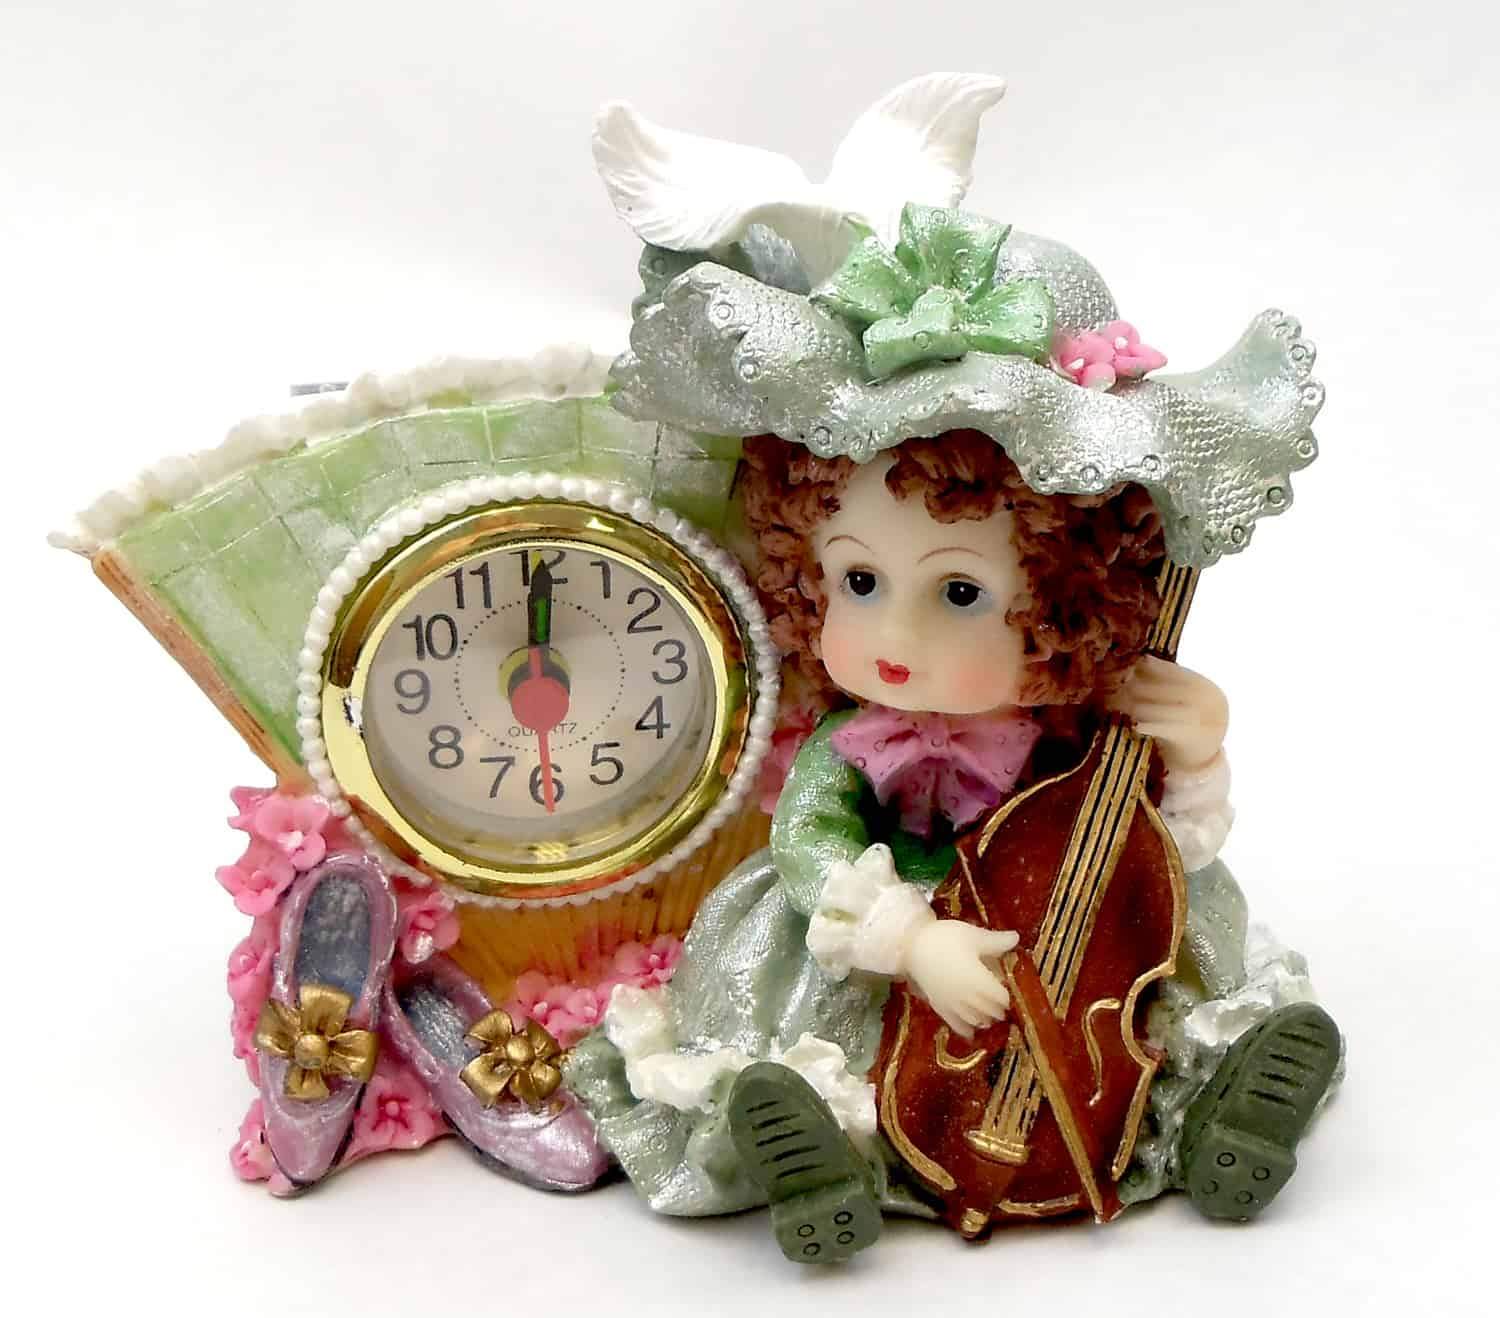 1256138A-G - Victorian Resin Clock - Girl Musician With Violin In Green Dress